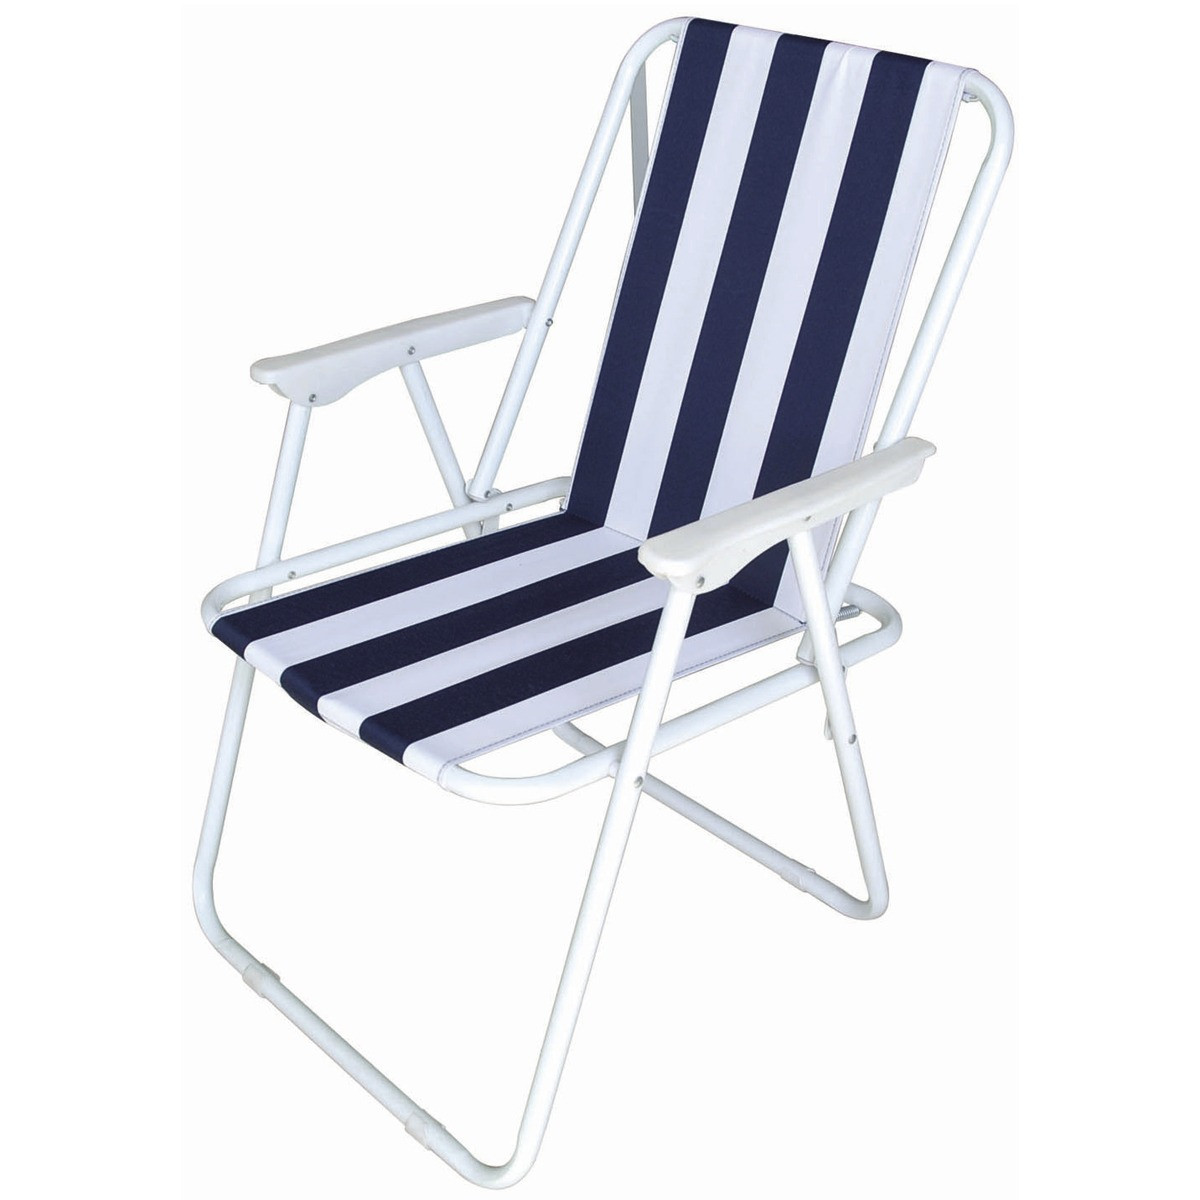 Sillas De Playa Plegables Encantador Silla De Playa Plegables Colores Linclub $ 6 990 En Of 34  Gran Sillas De Playa Plegables